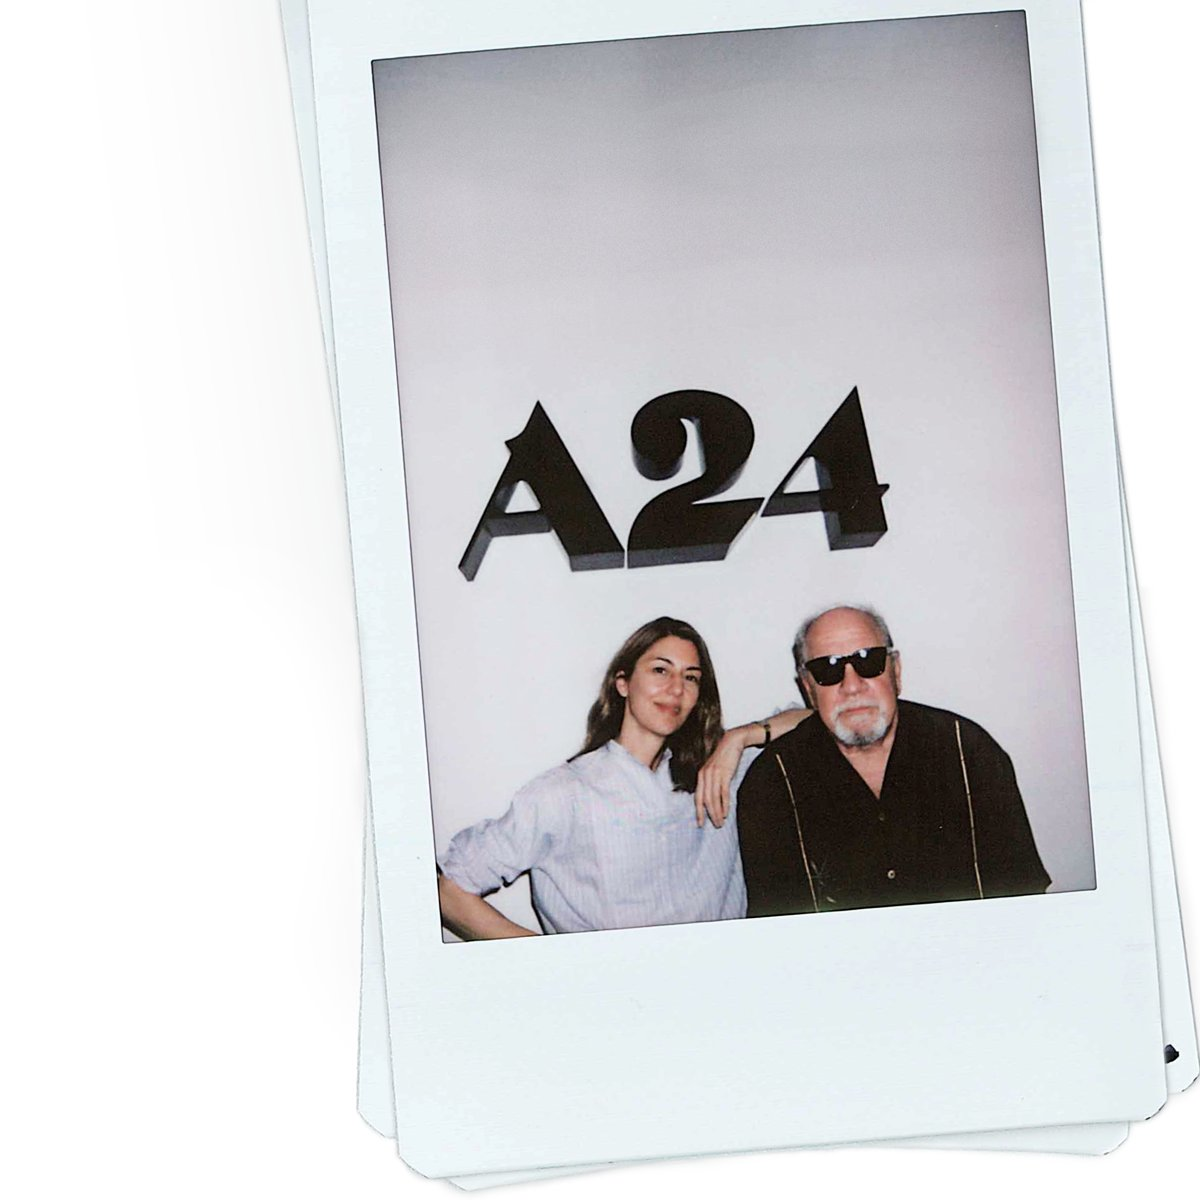 Next week on The A24 Podcast: Paul Schrader & Sofia Coppola